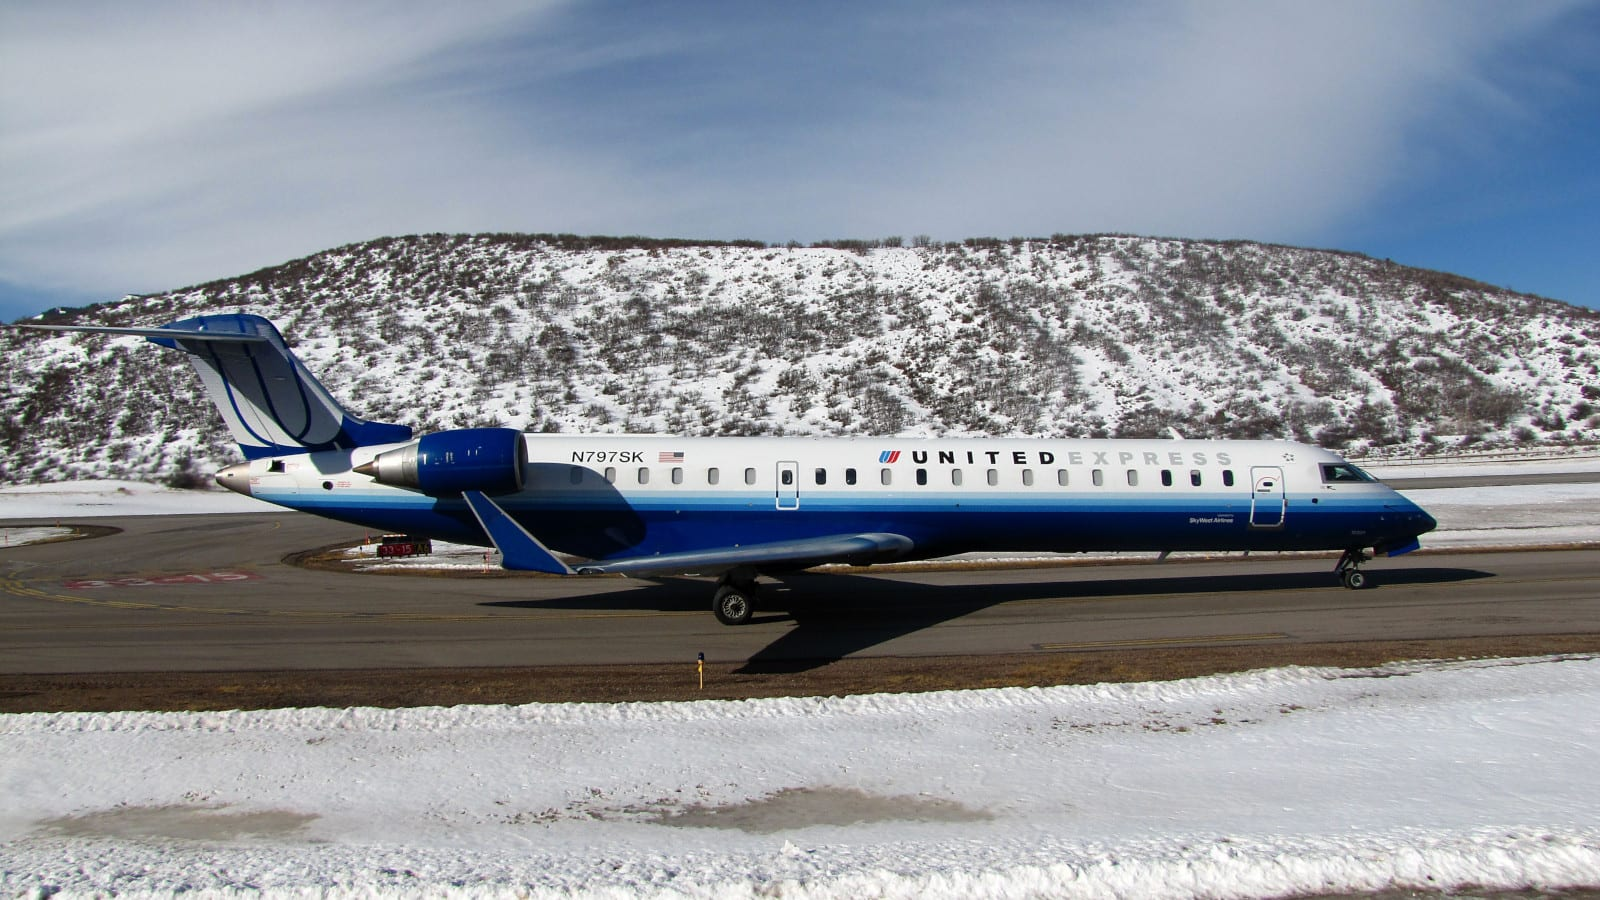 Aspen-Pitkin County Airport SkyWest Airlines Bombardier CRJ-700